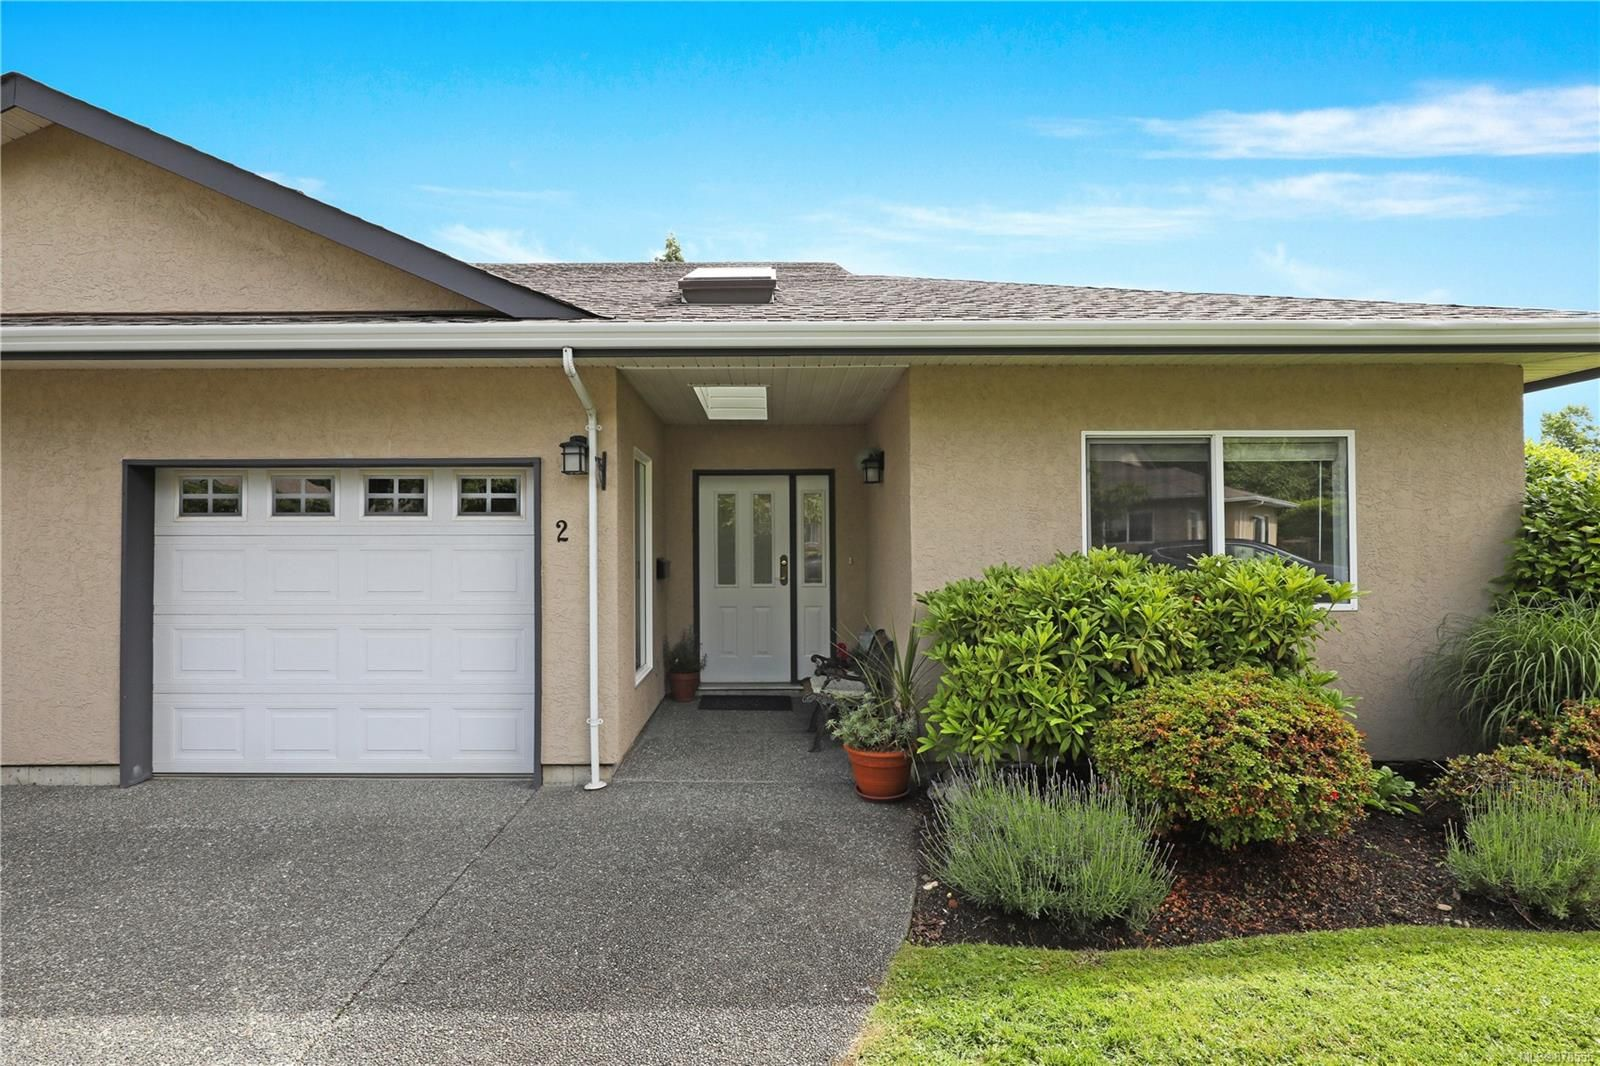 Main Photo: 2 352 Douglas St in : CV Comox (Town of) Row/Townhouse for sale (Comox Valley)  : MLS®# 878555